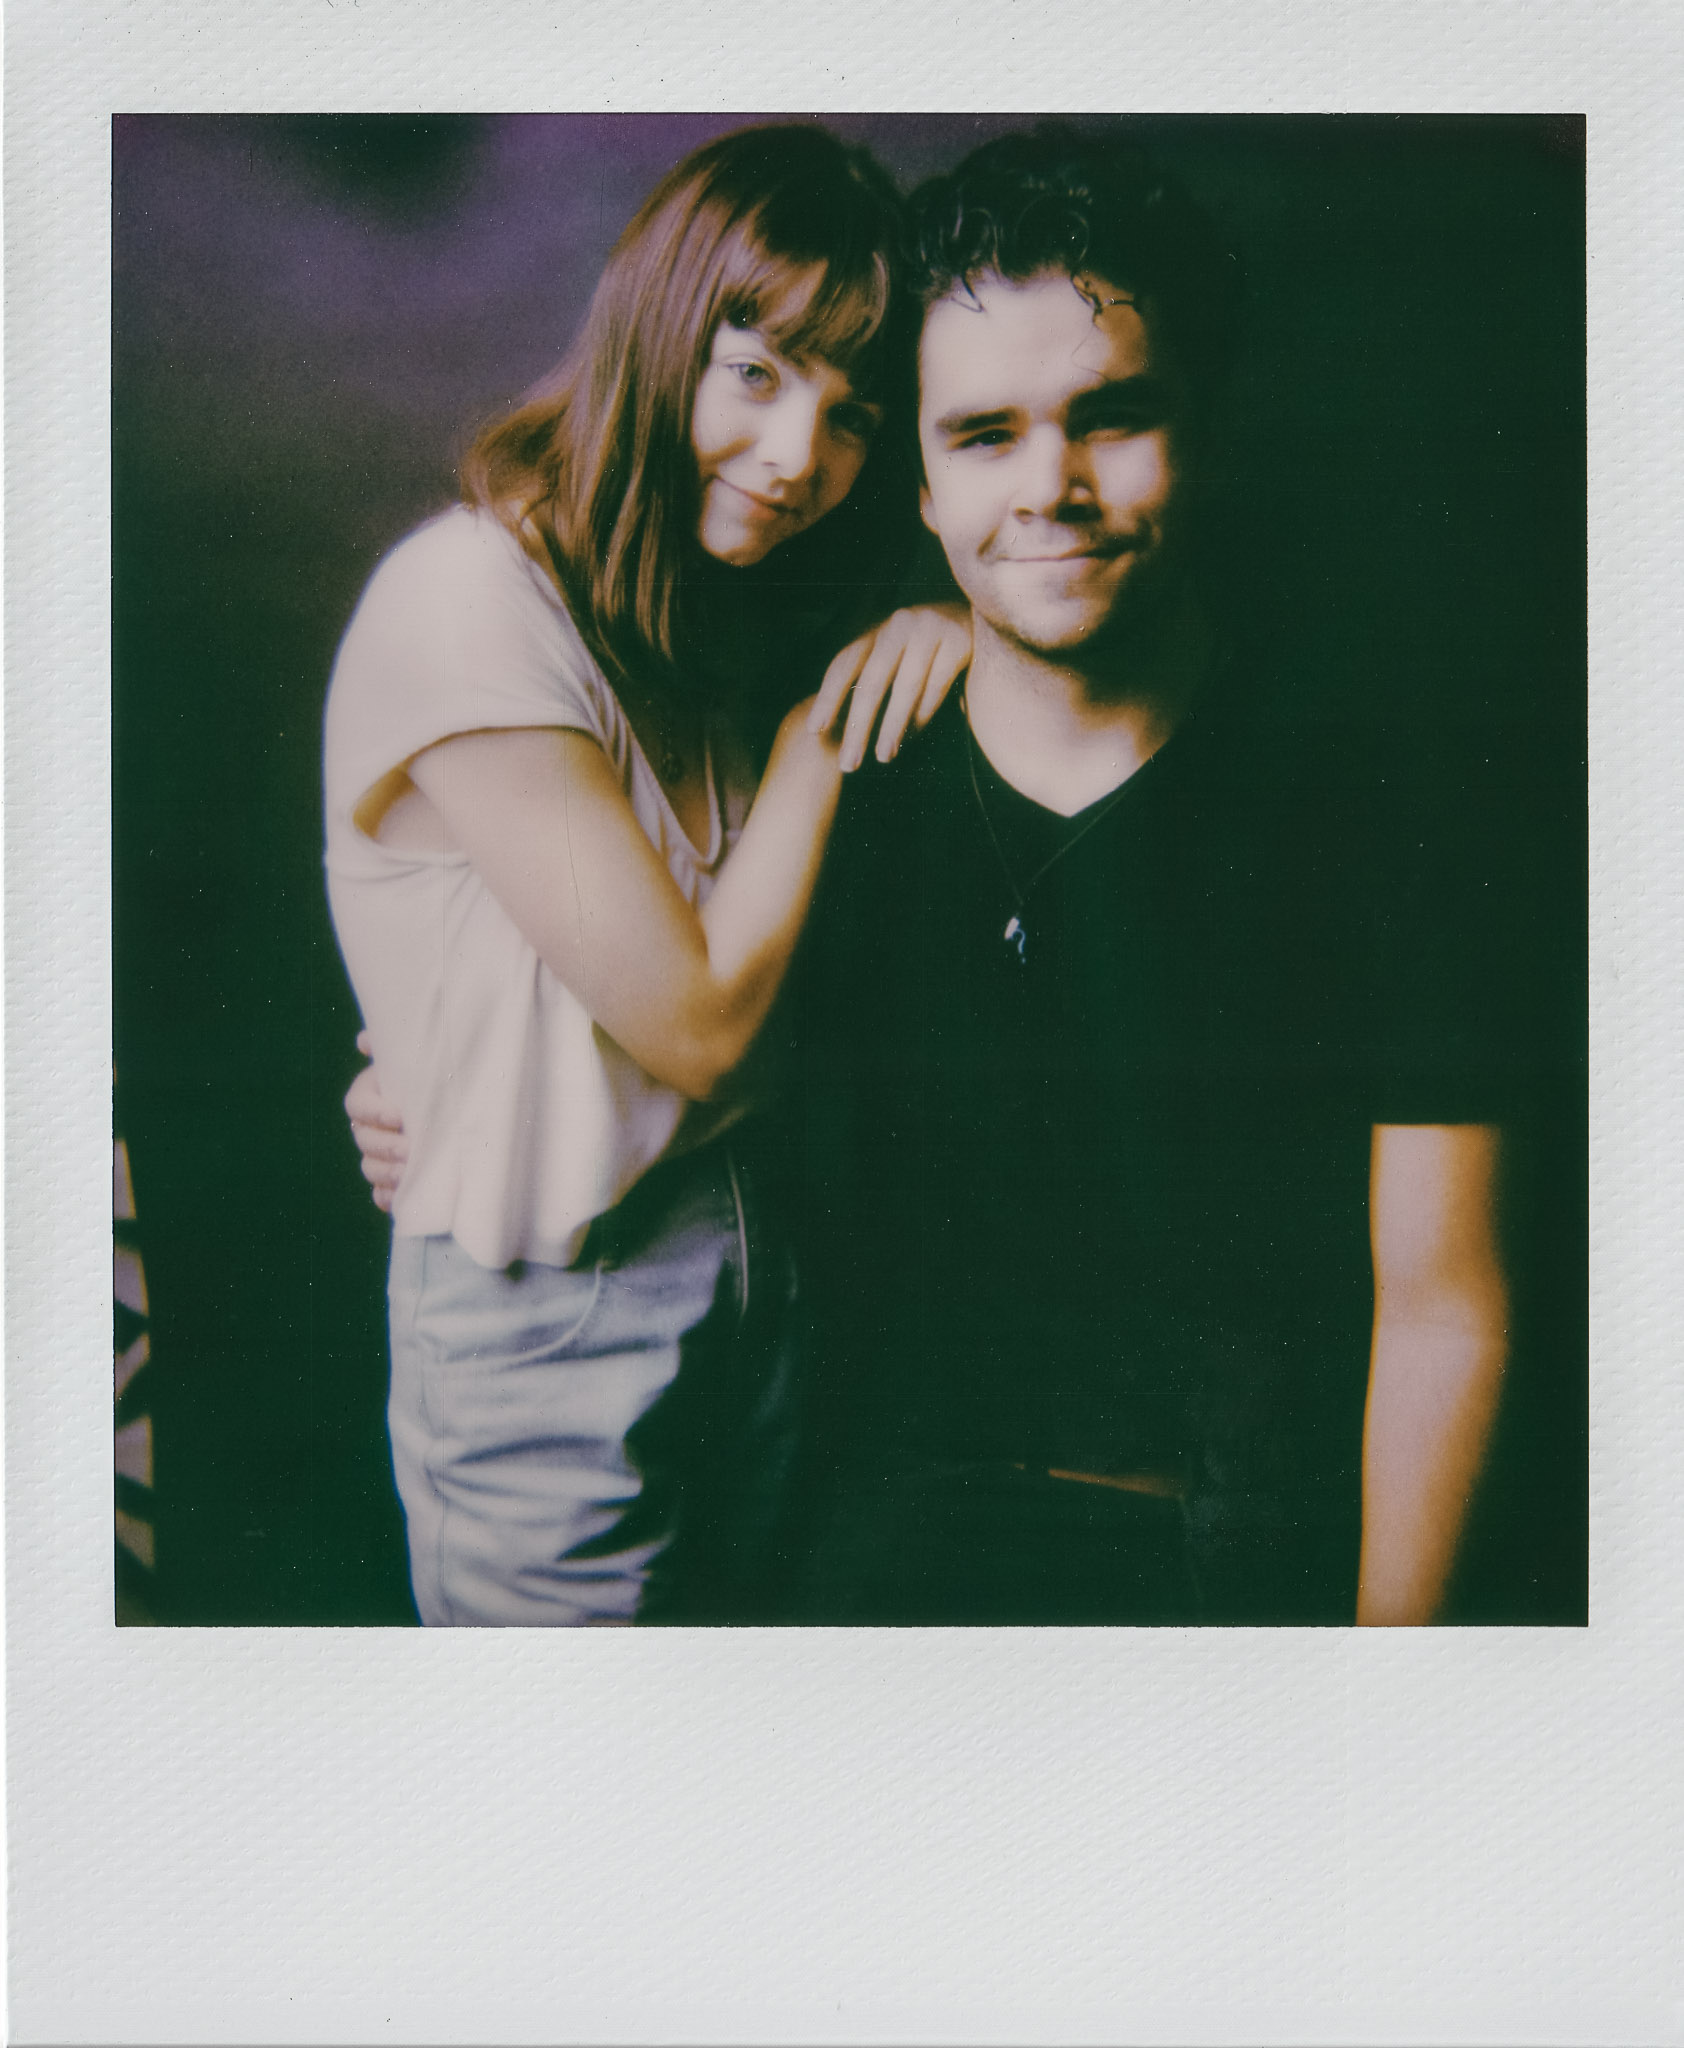 Couple_Polaroid_Original.jpg